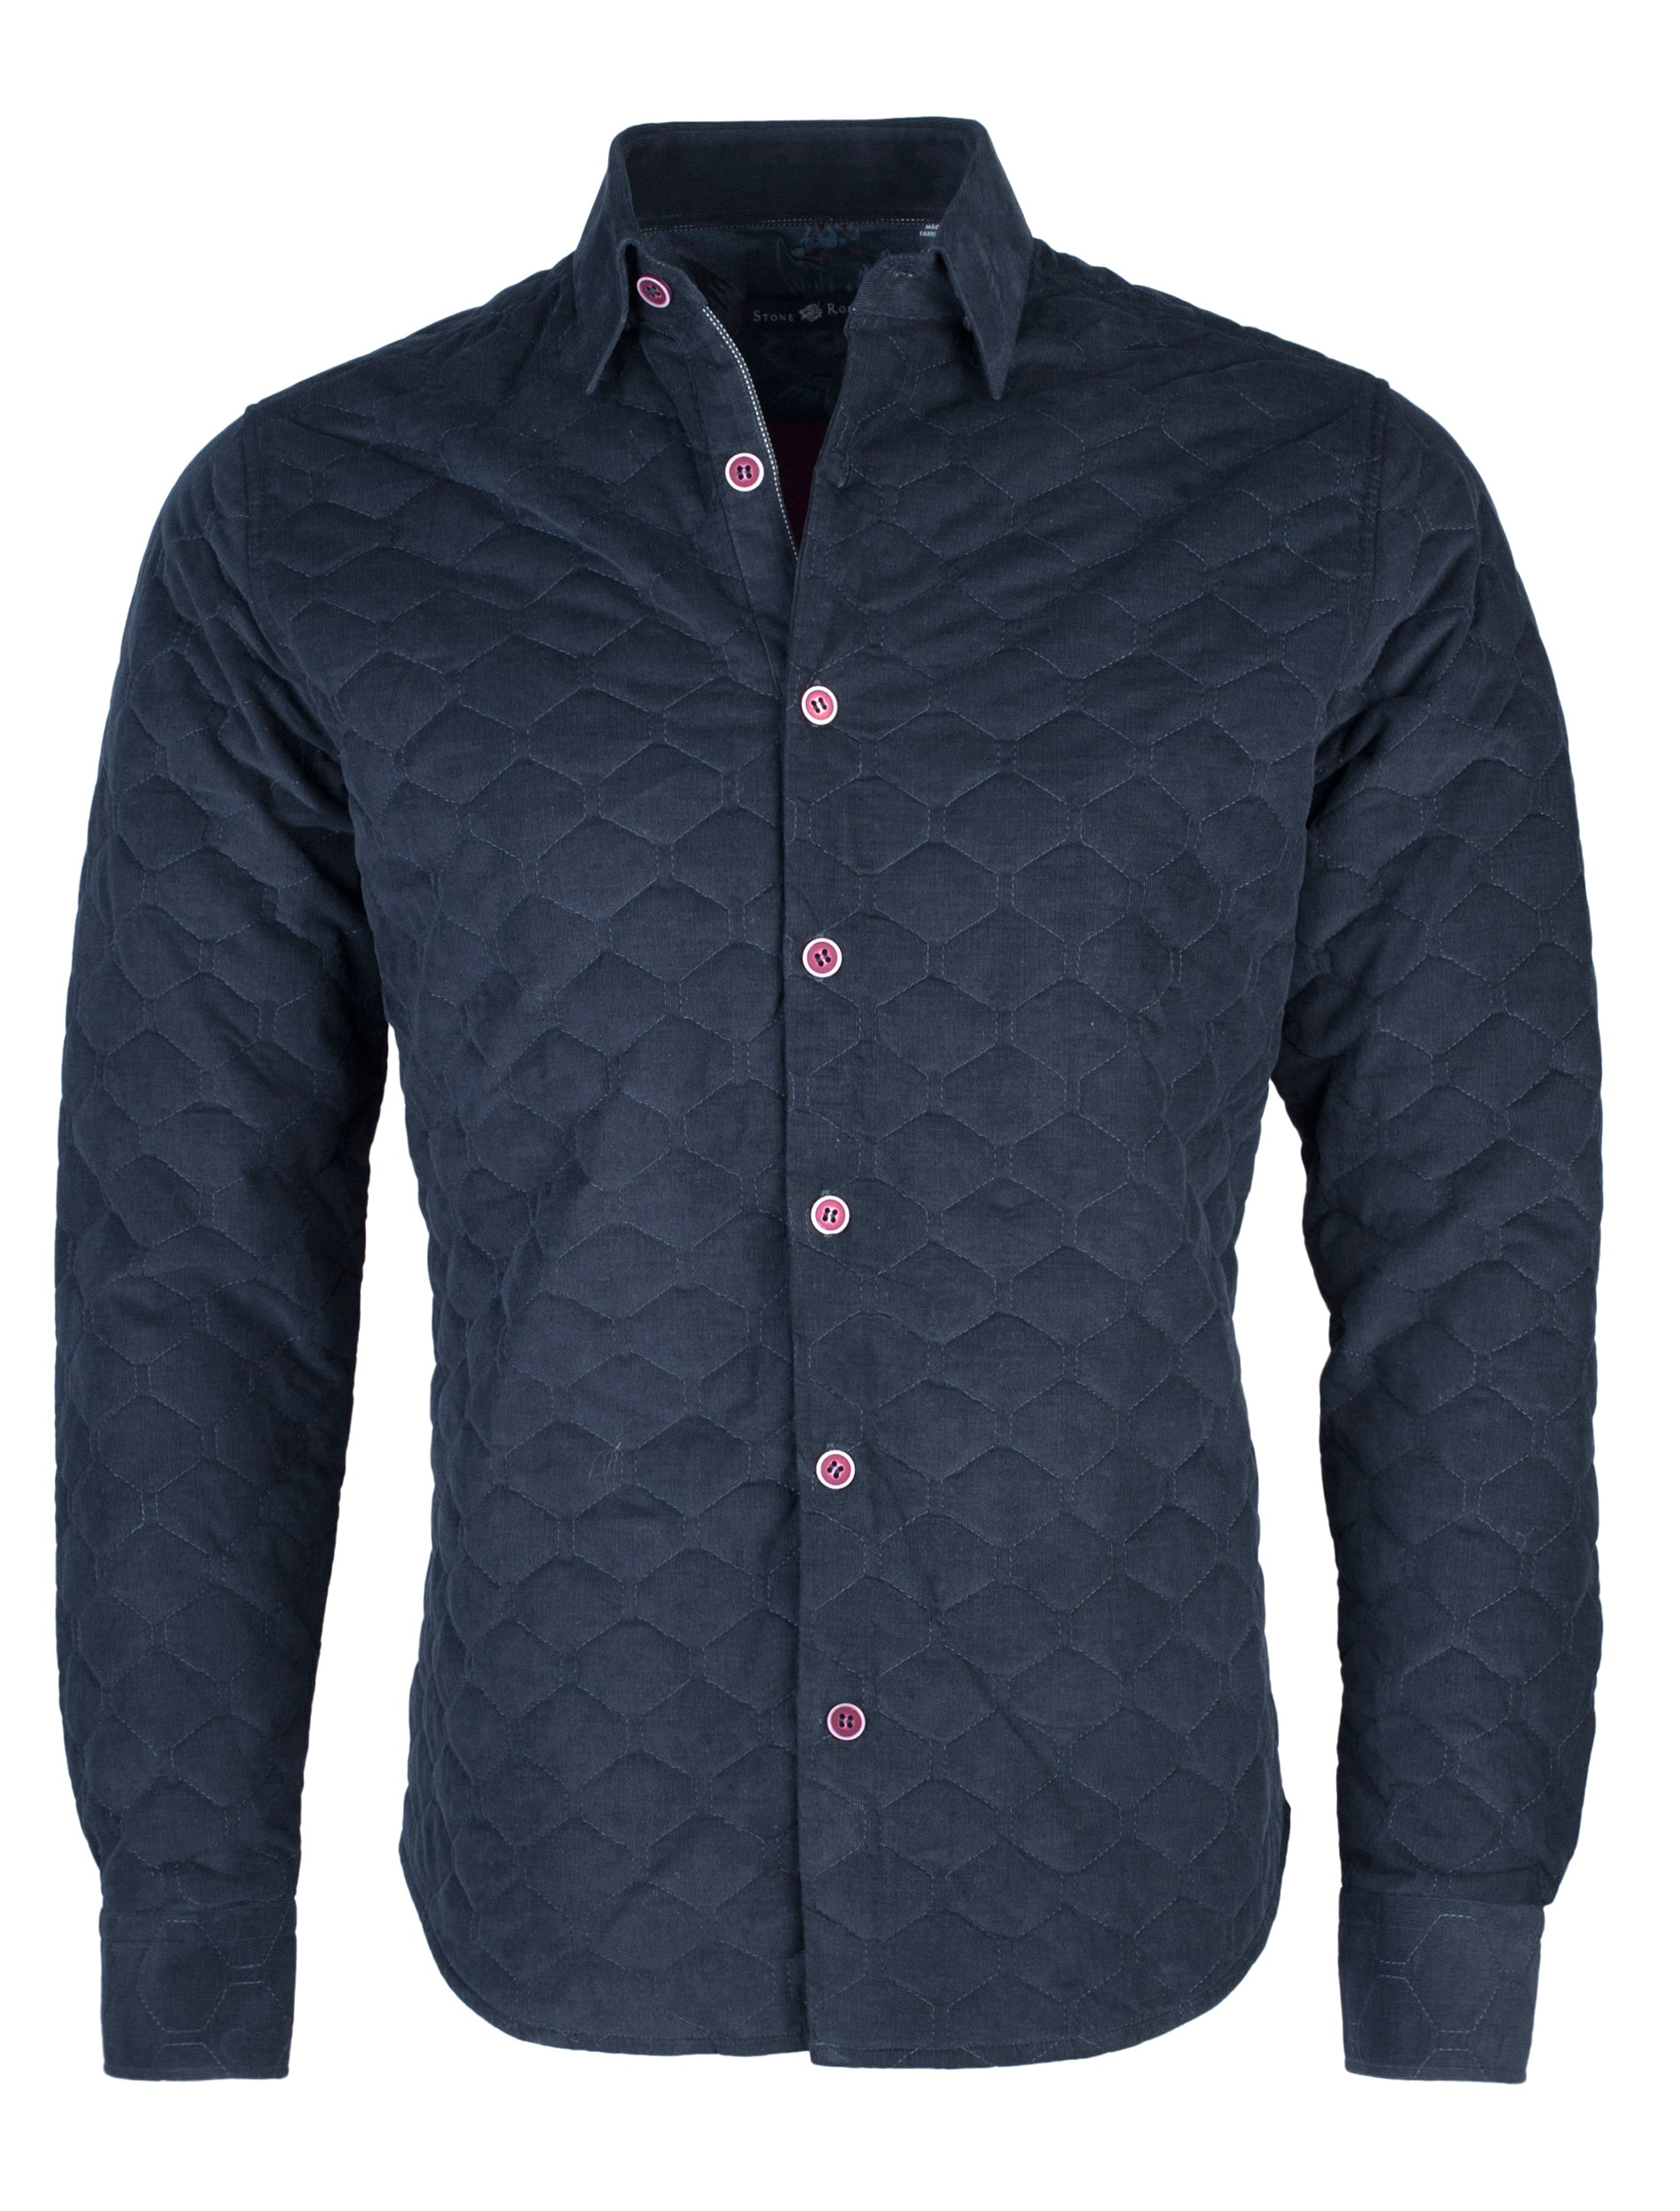 Navy Quilted Corduroy Long Sleeve Shirt-Stone Rose